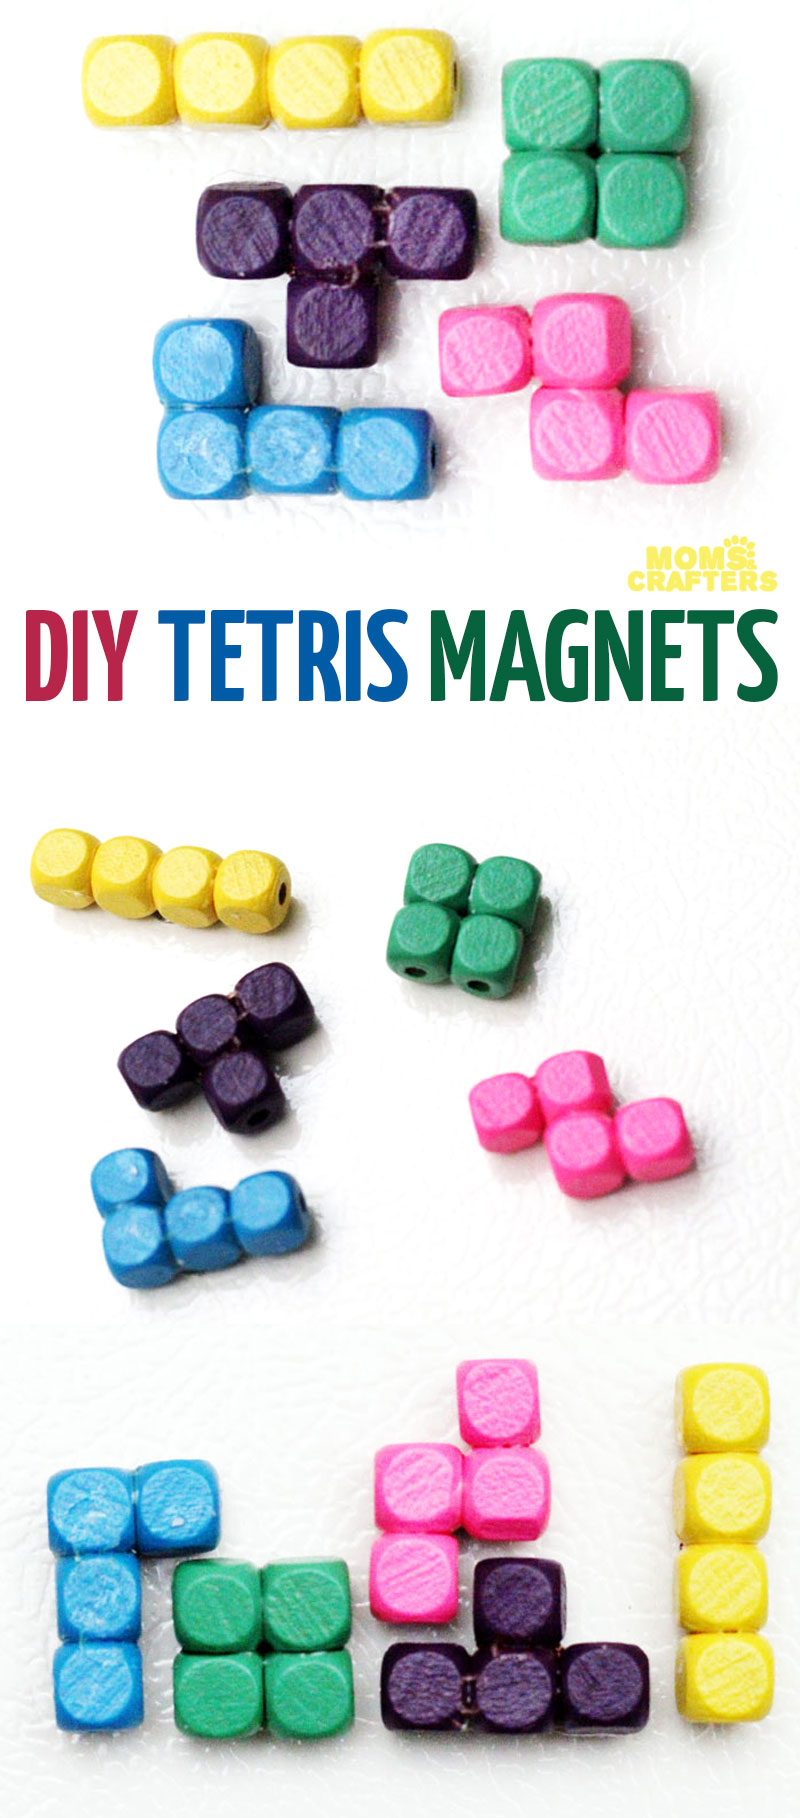 Are you a Tetris fan or do you know one? You'll love this Tetris craft! Tetris pieces magnets are quick and easy to make and are a great cheap DIY gift.